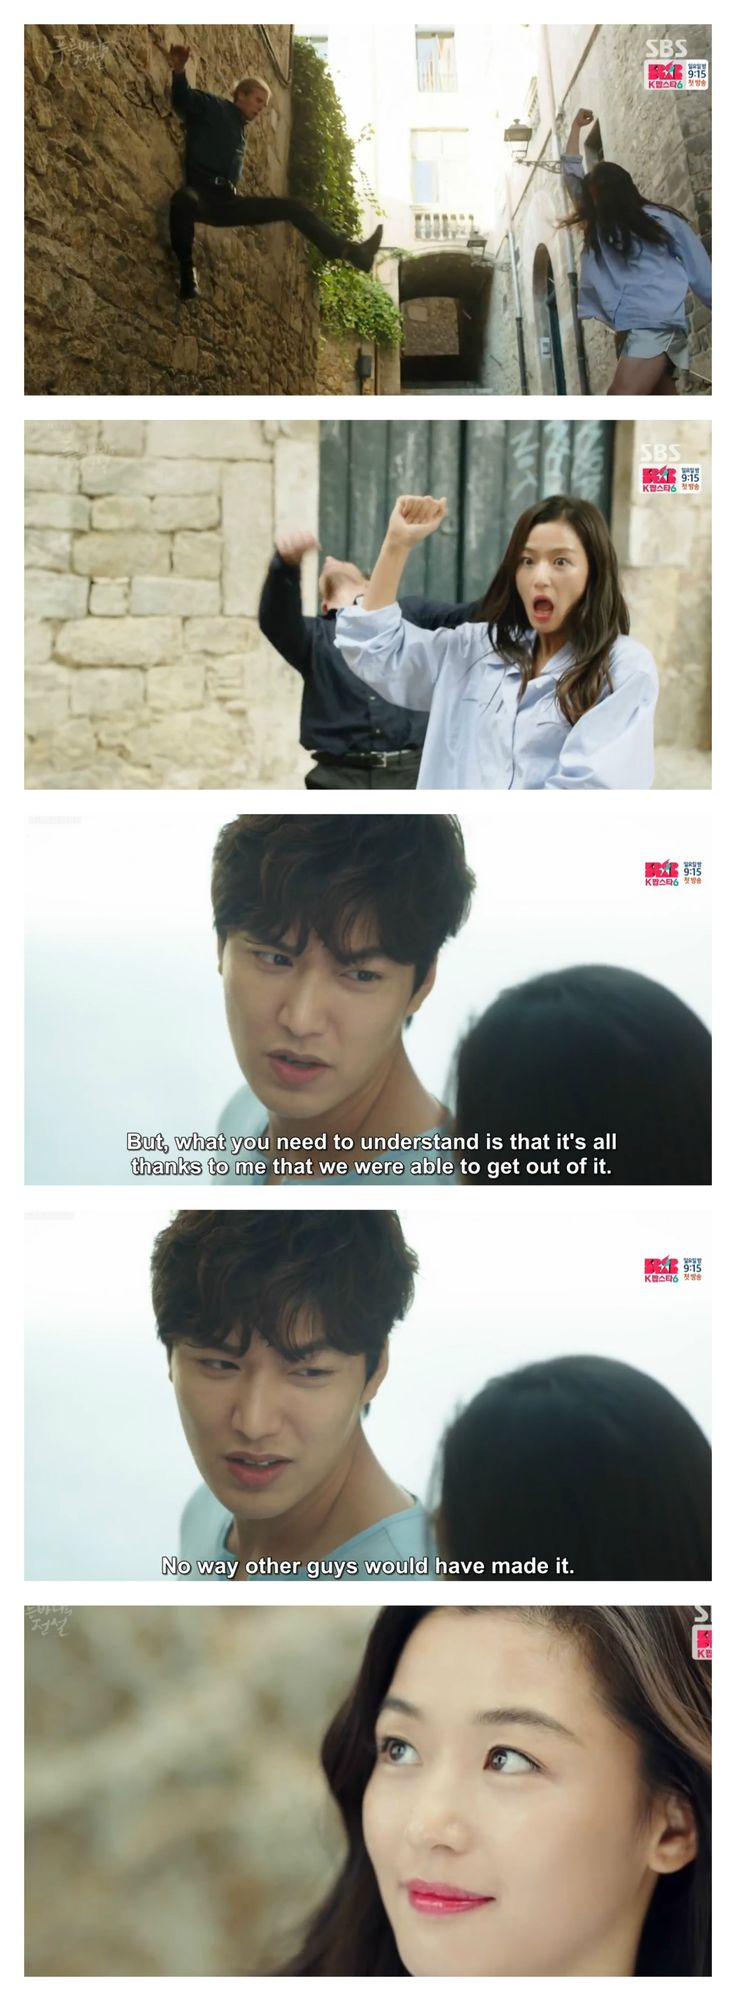 Hahaha... This scene! Joon Jae thinks his swiftness got them out of trouble when in reality the Miss Mermaid has been doing all the fighting for him. He barely hits three men while she single-handedly tackles a huge group of goons.   Lee Min Ho is so adorable in this scene and Jun Ji Hyun is a crazy mermaid.    The Legend of the Blue Sea episode 2.  Courtesy: Kissasian.com